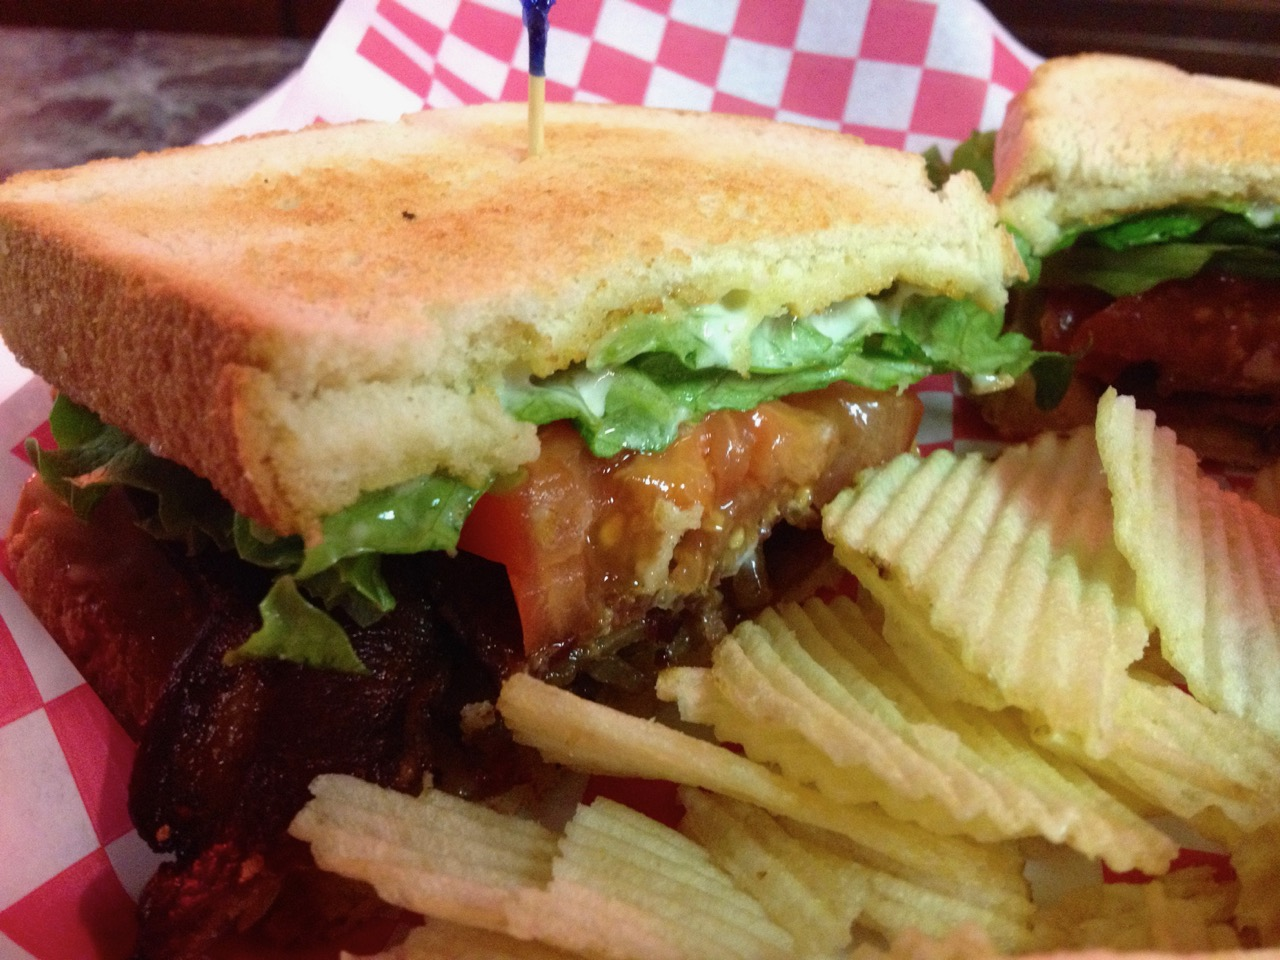 A Darn Good Turkey Melt & BLT at the Sportspage – September 10 2013